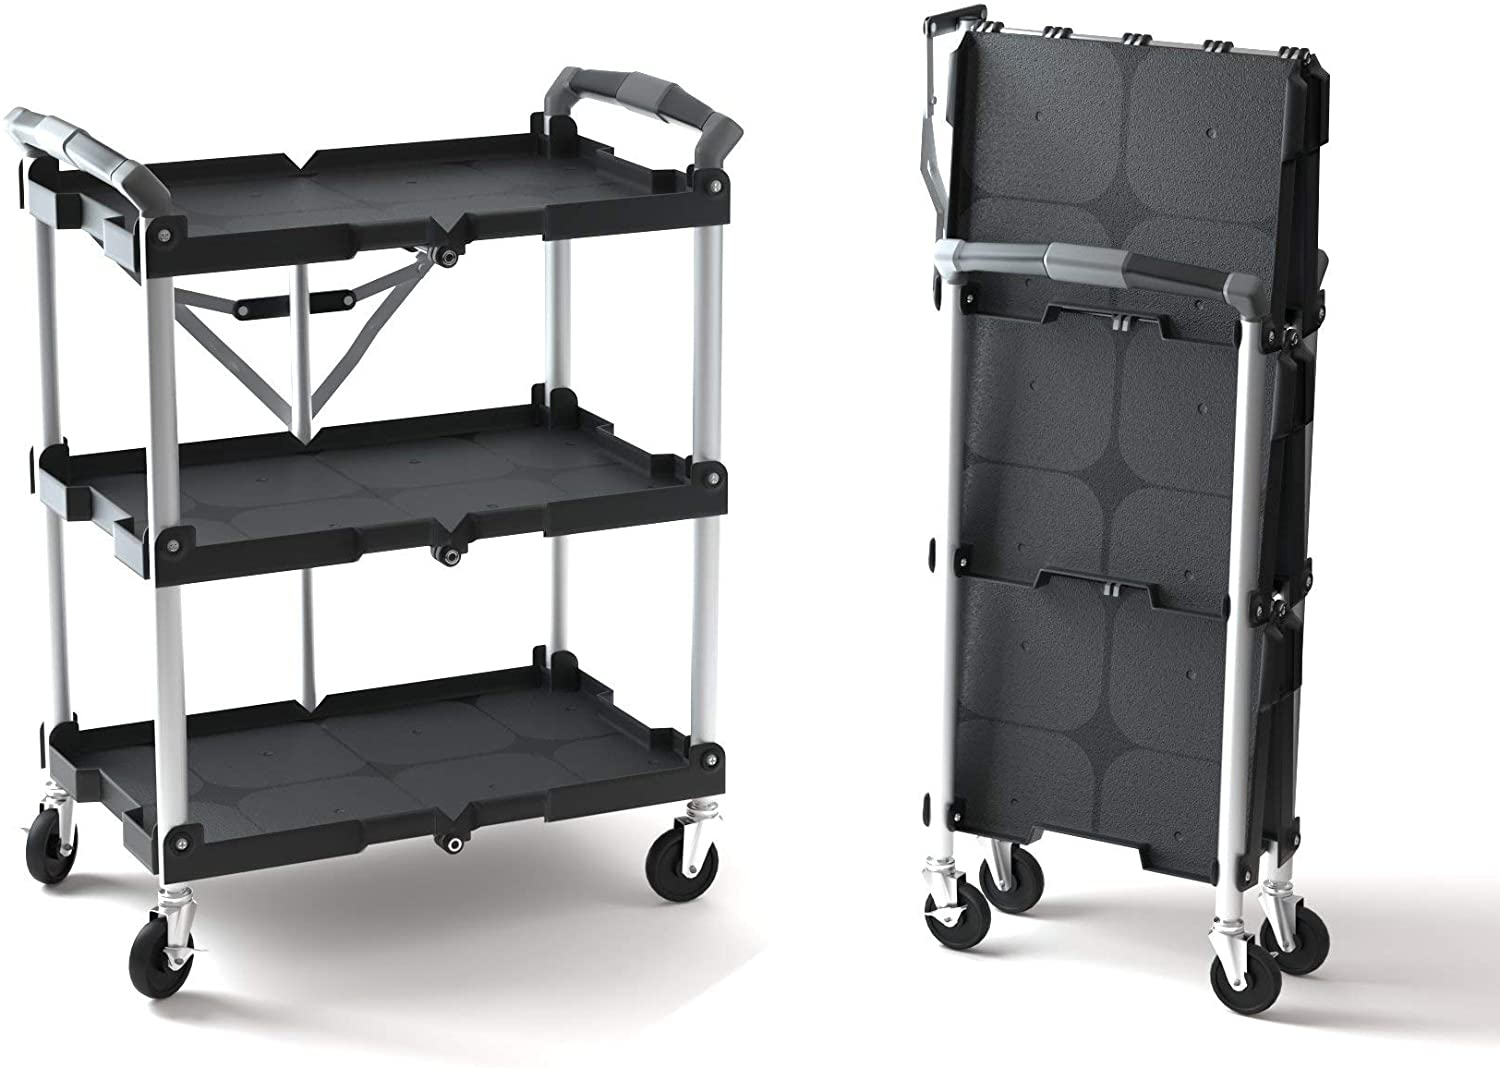 Amazon Com Olympia Tools 85 188 Pack N Roll Folding Collapsible Service Cart Black 50 Lb Load Capacity Per Shelf Home Improvement